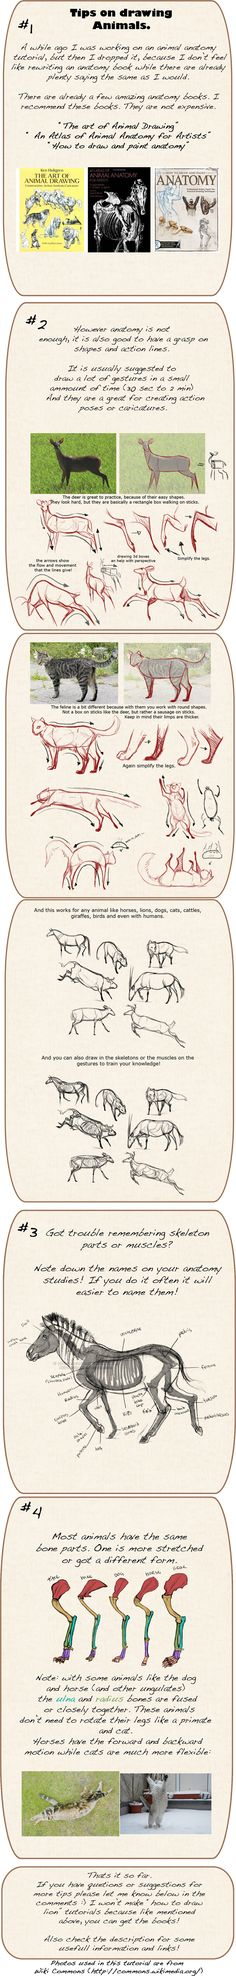 I had deleted my previous tutorial a while ago because I was not happy with how I explained things. It really felt like was rewriting an anatomy book. Tips on drawing animals Drawing Skills, Drawing Lessons, Drawing Techniques, Drawing Tips, Art Lessons, Drawing Ideas, Animal Drawings, Drawing Animals, My Drawings